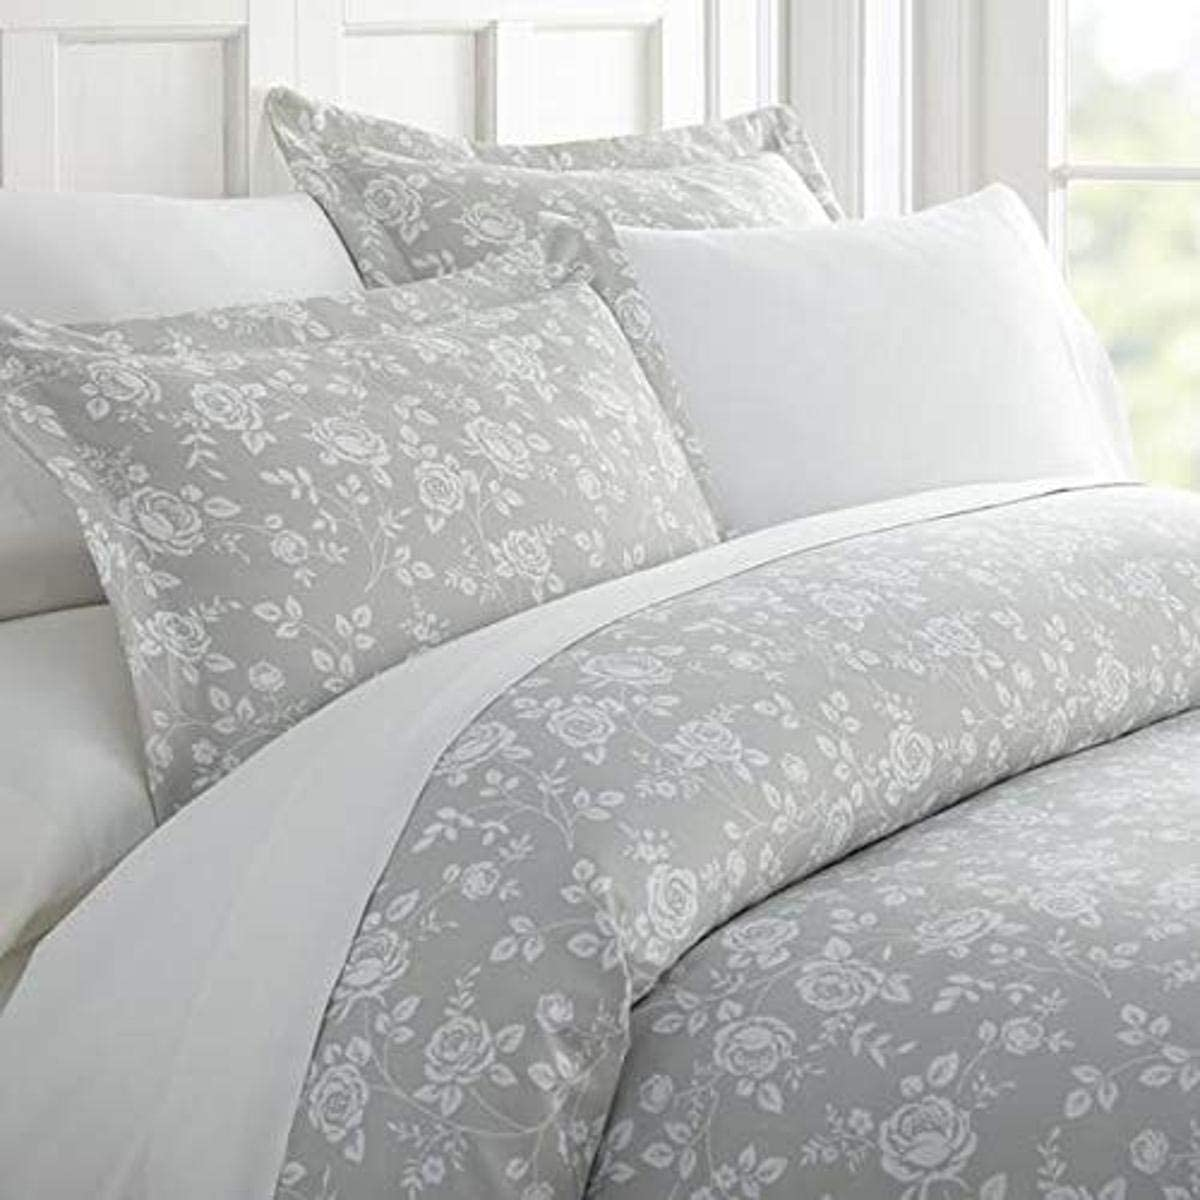 Home Collection iEnjoy Home Hotel Collection Premium Ultra Soft Rose Pattern 3 Piece Duvet Cover Bed Sheet Set, King/California King, Light Gray